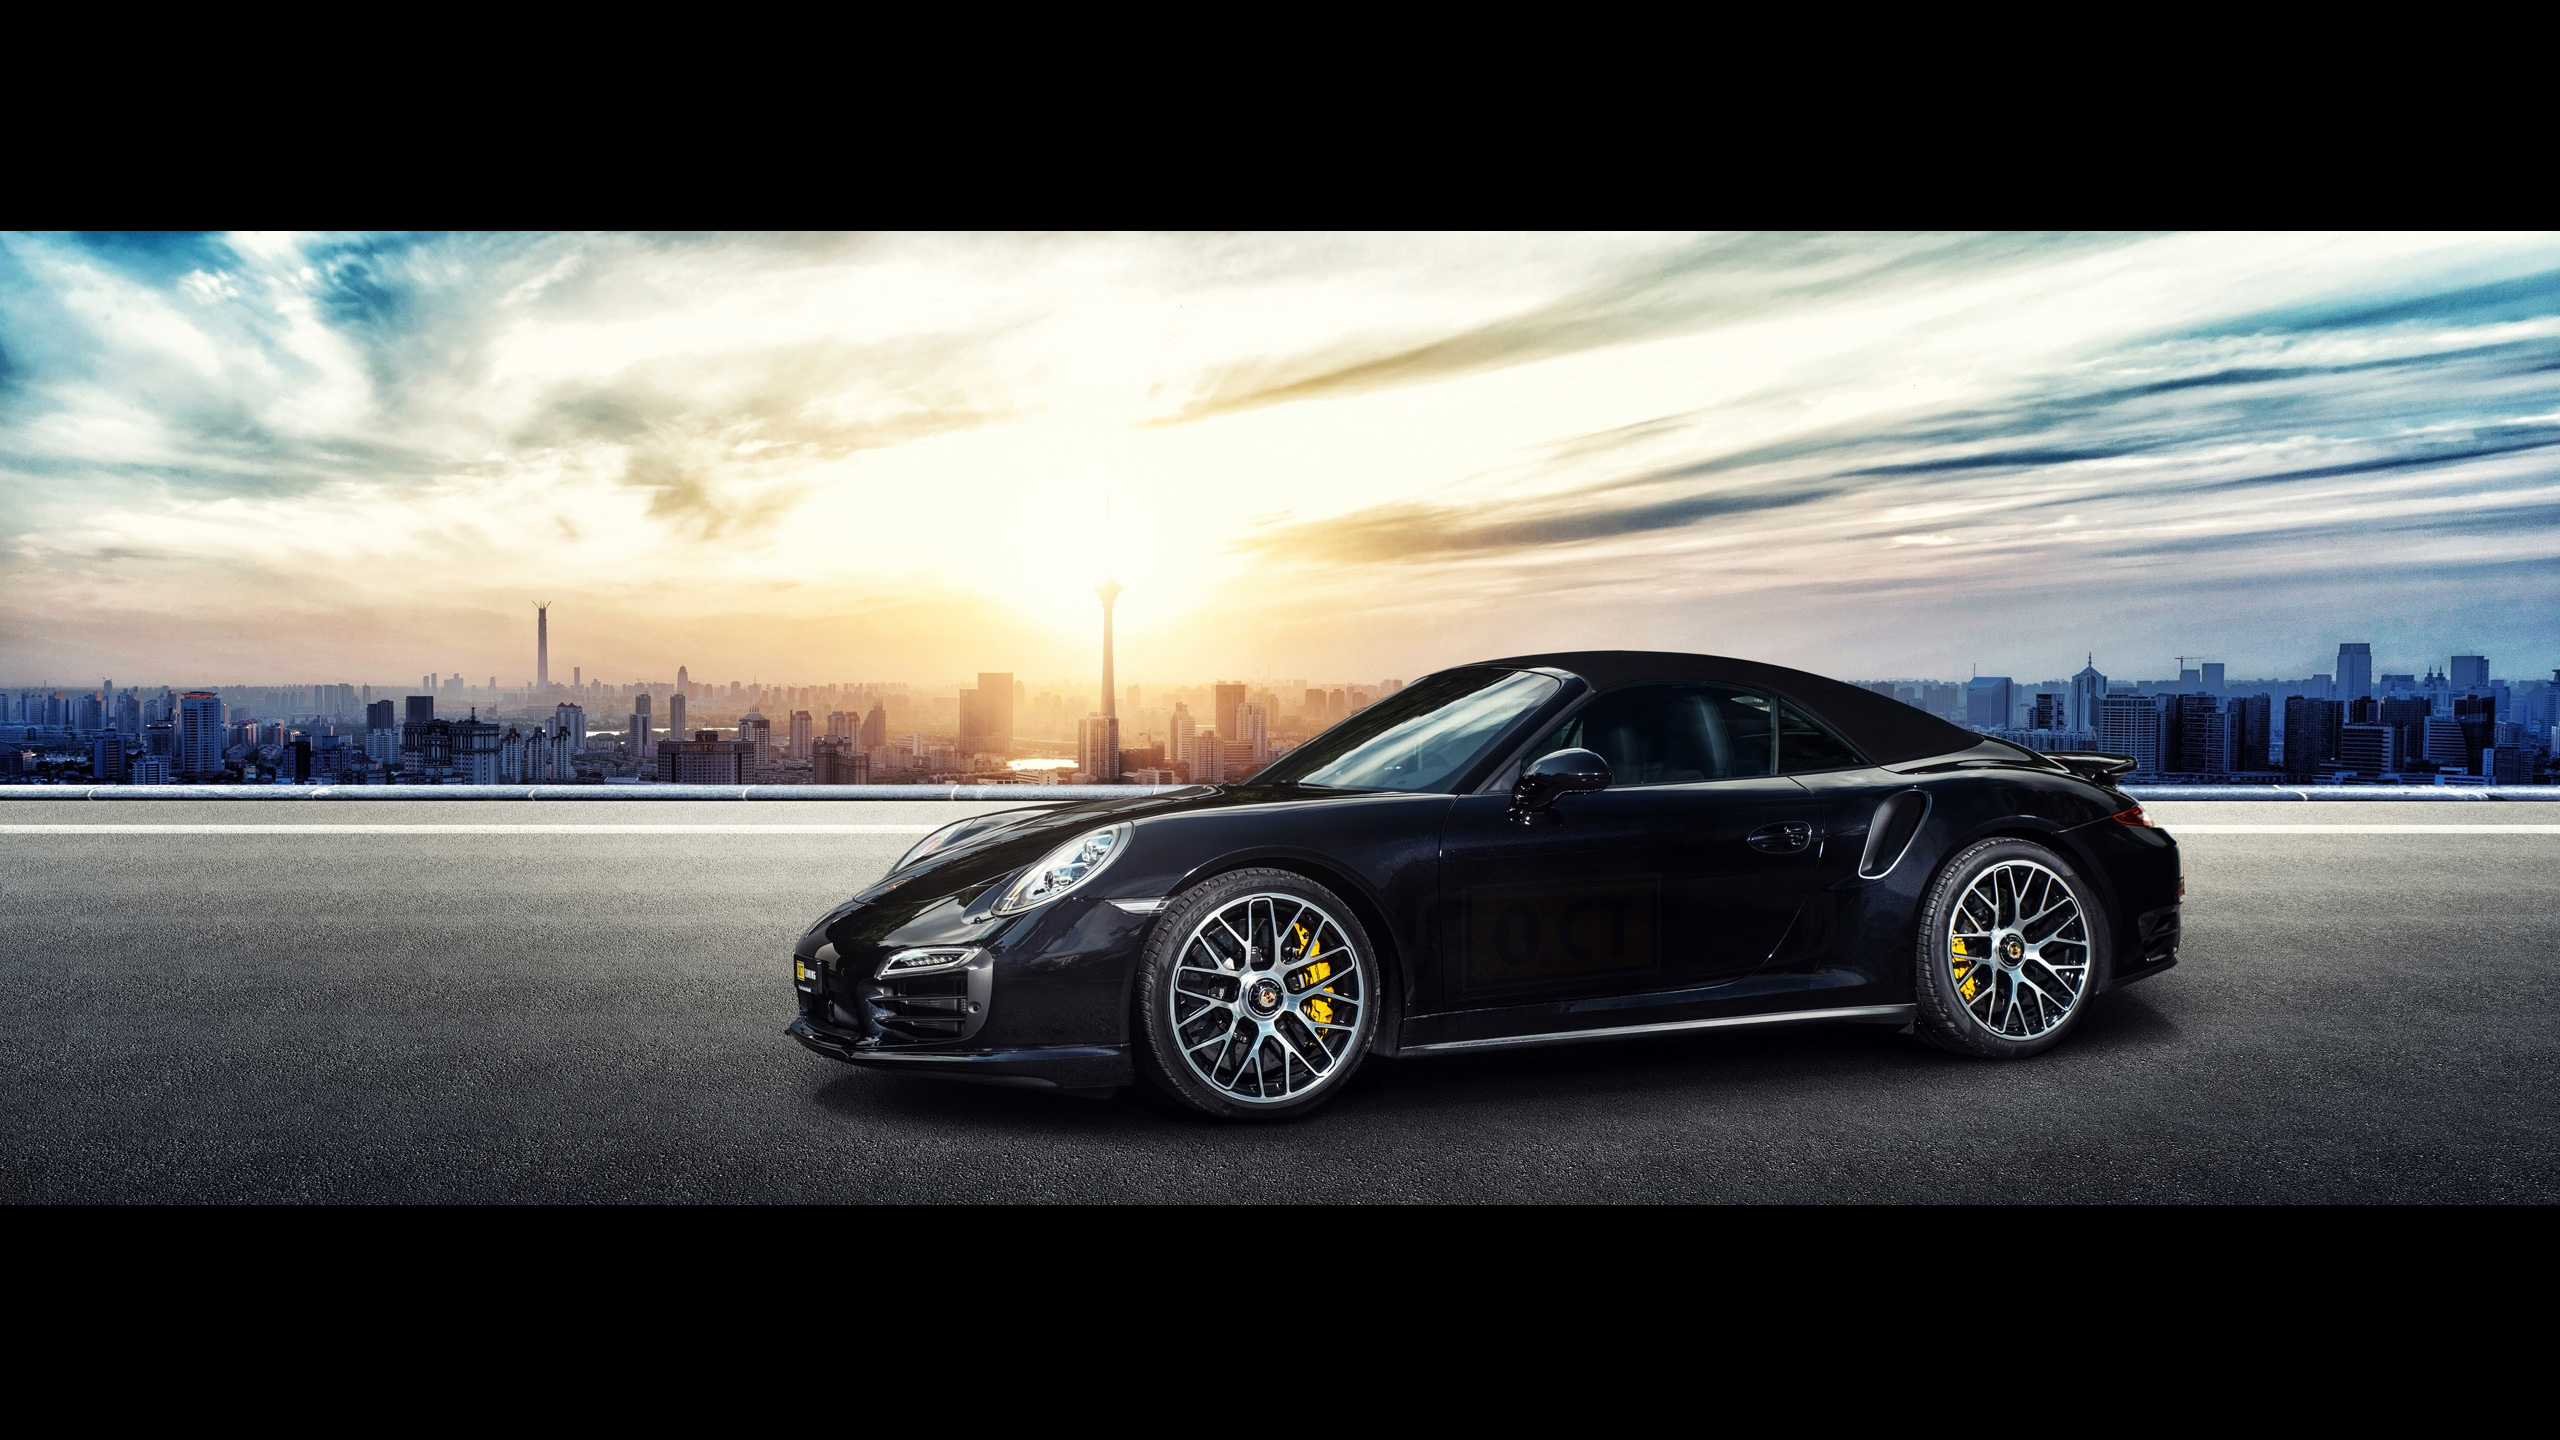 911 Turbo Wallpapers Top Free 911 Turbo Backgrounds